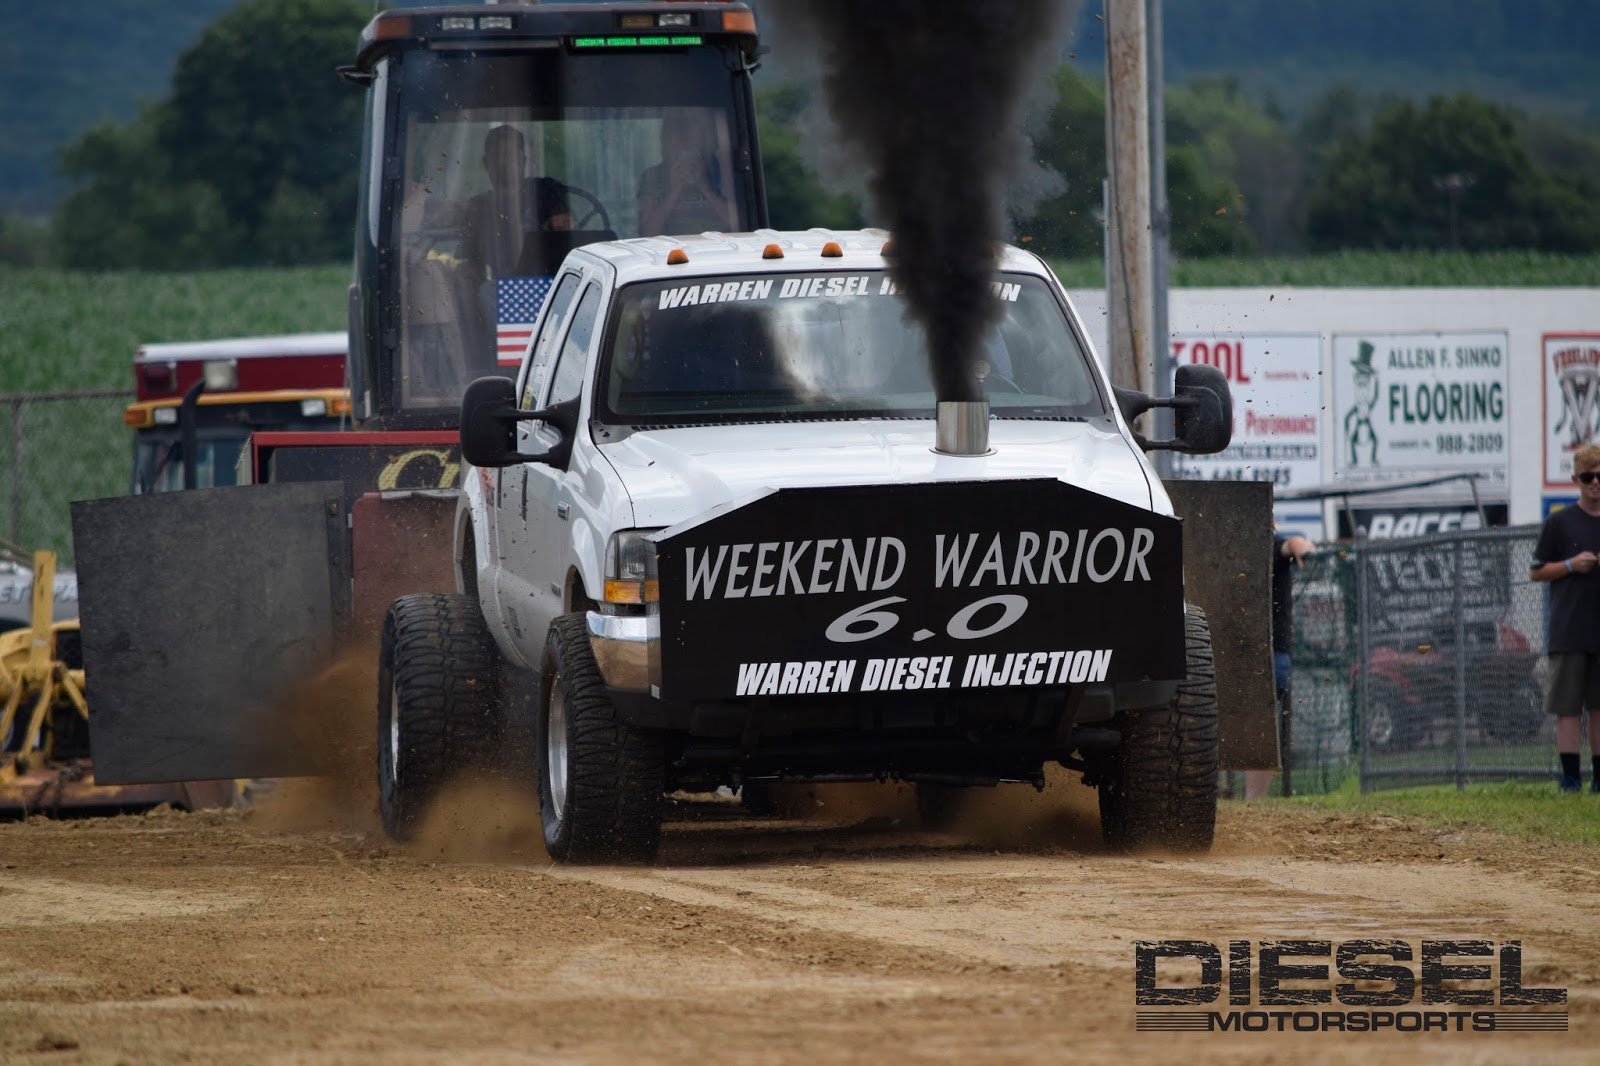 Diesel Motorsports: What Pulling Classes will be used for